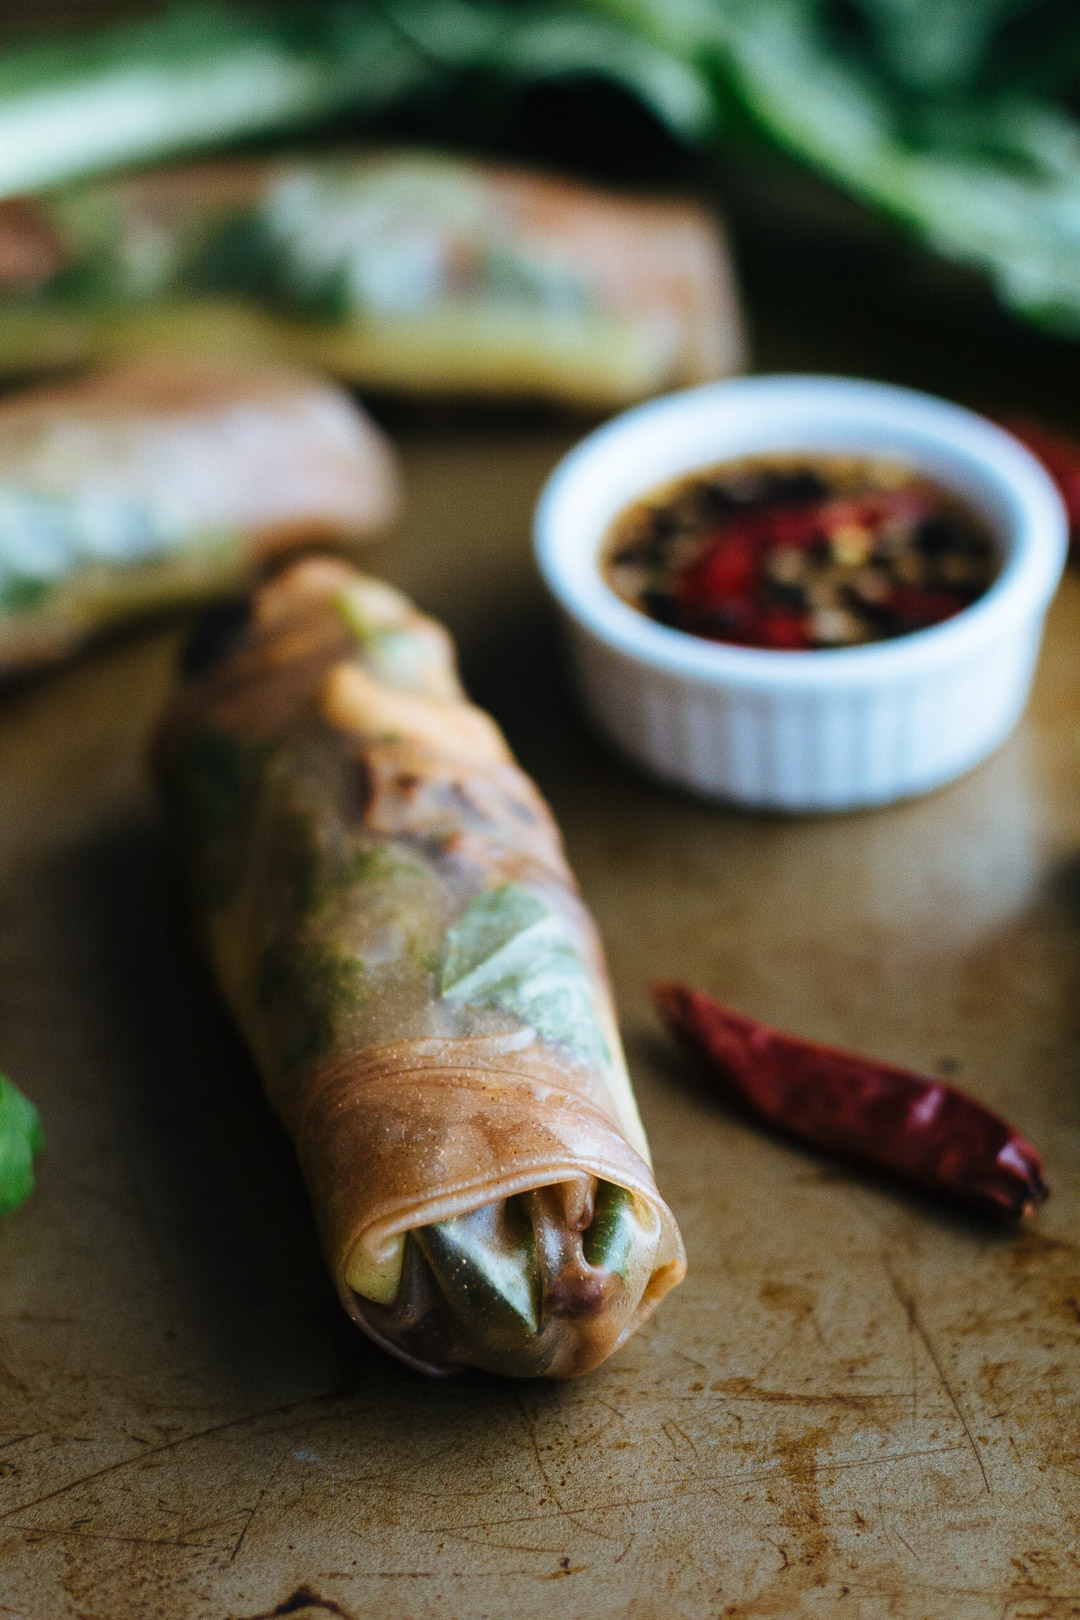 Close up angled shot of one spring roll with two spring rolls behind it along with the dipping sauce.